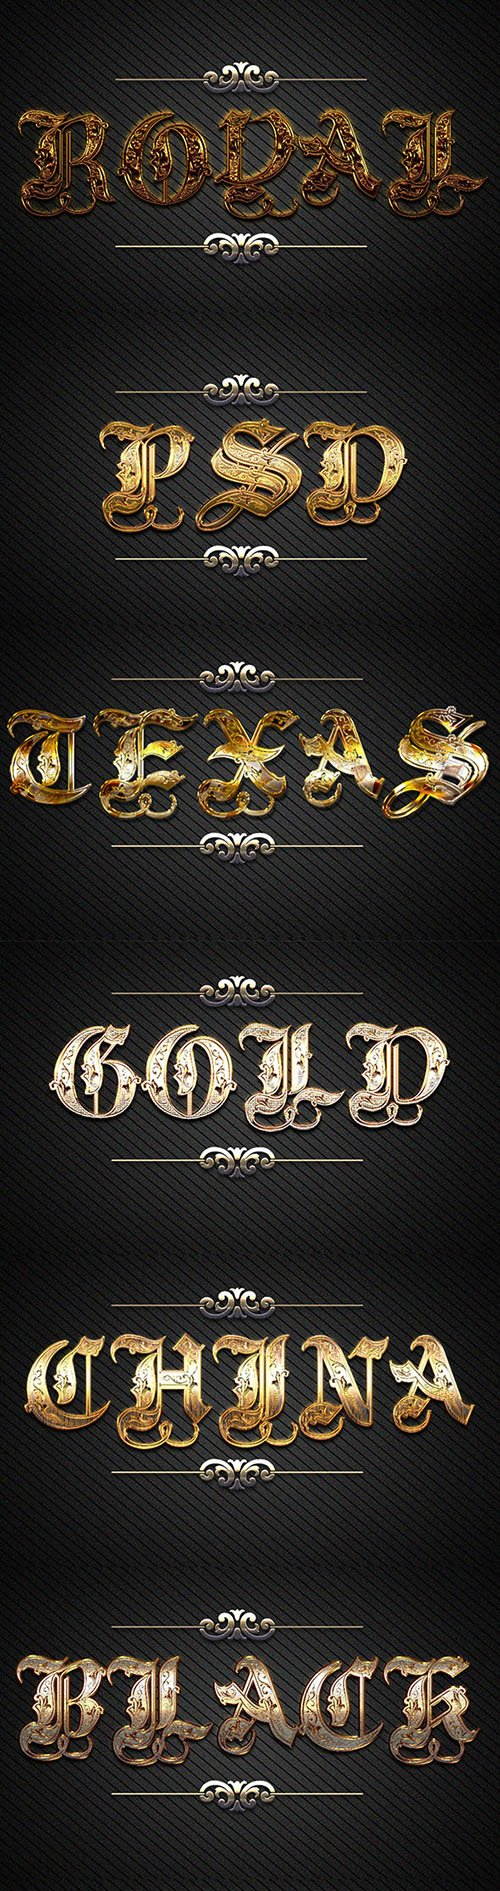 GraphicRiver - 10 3D Gold Text Styles D_47 21143260